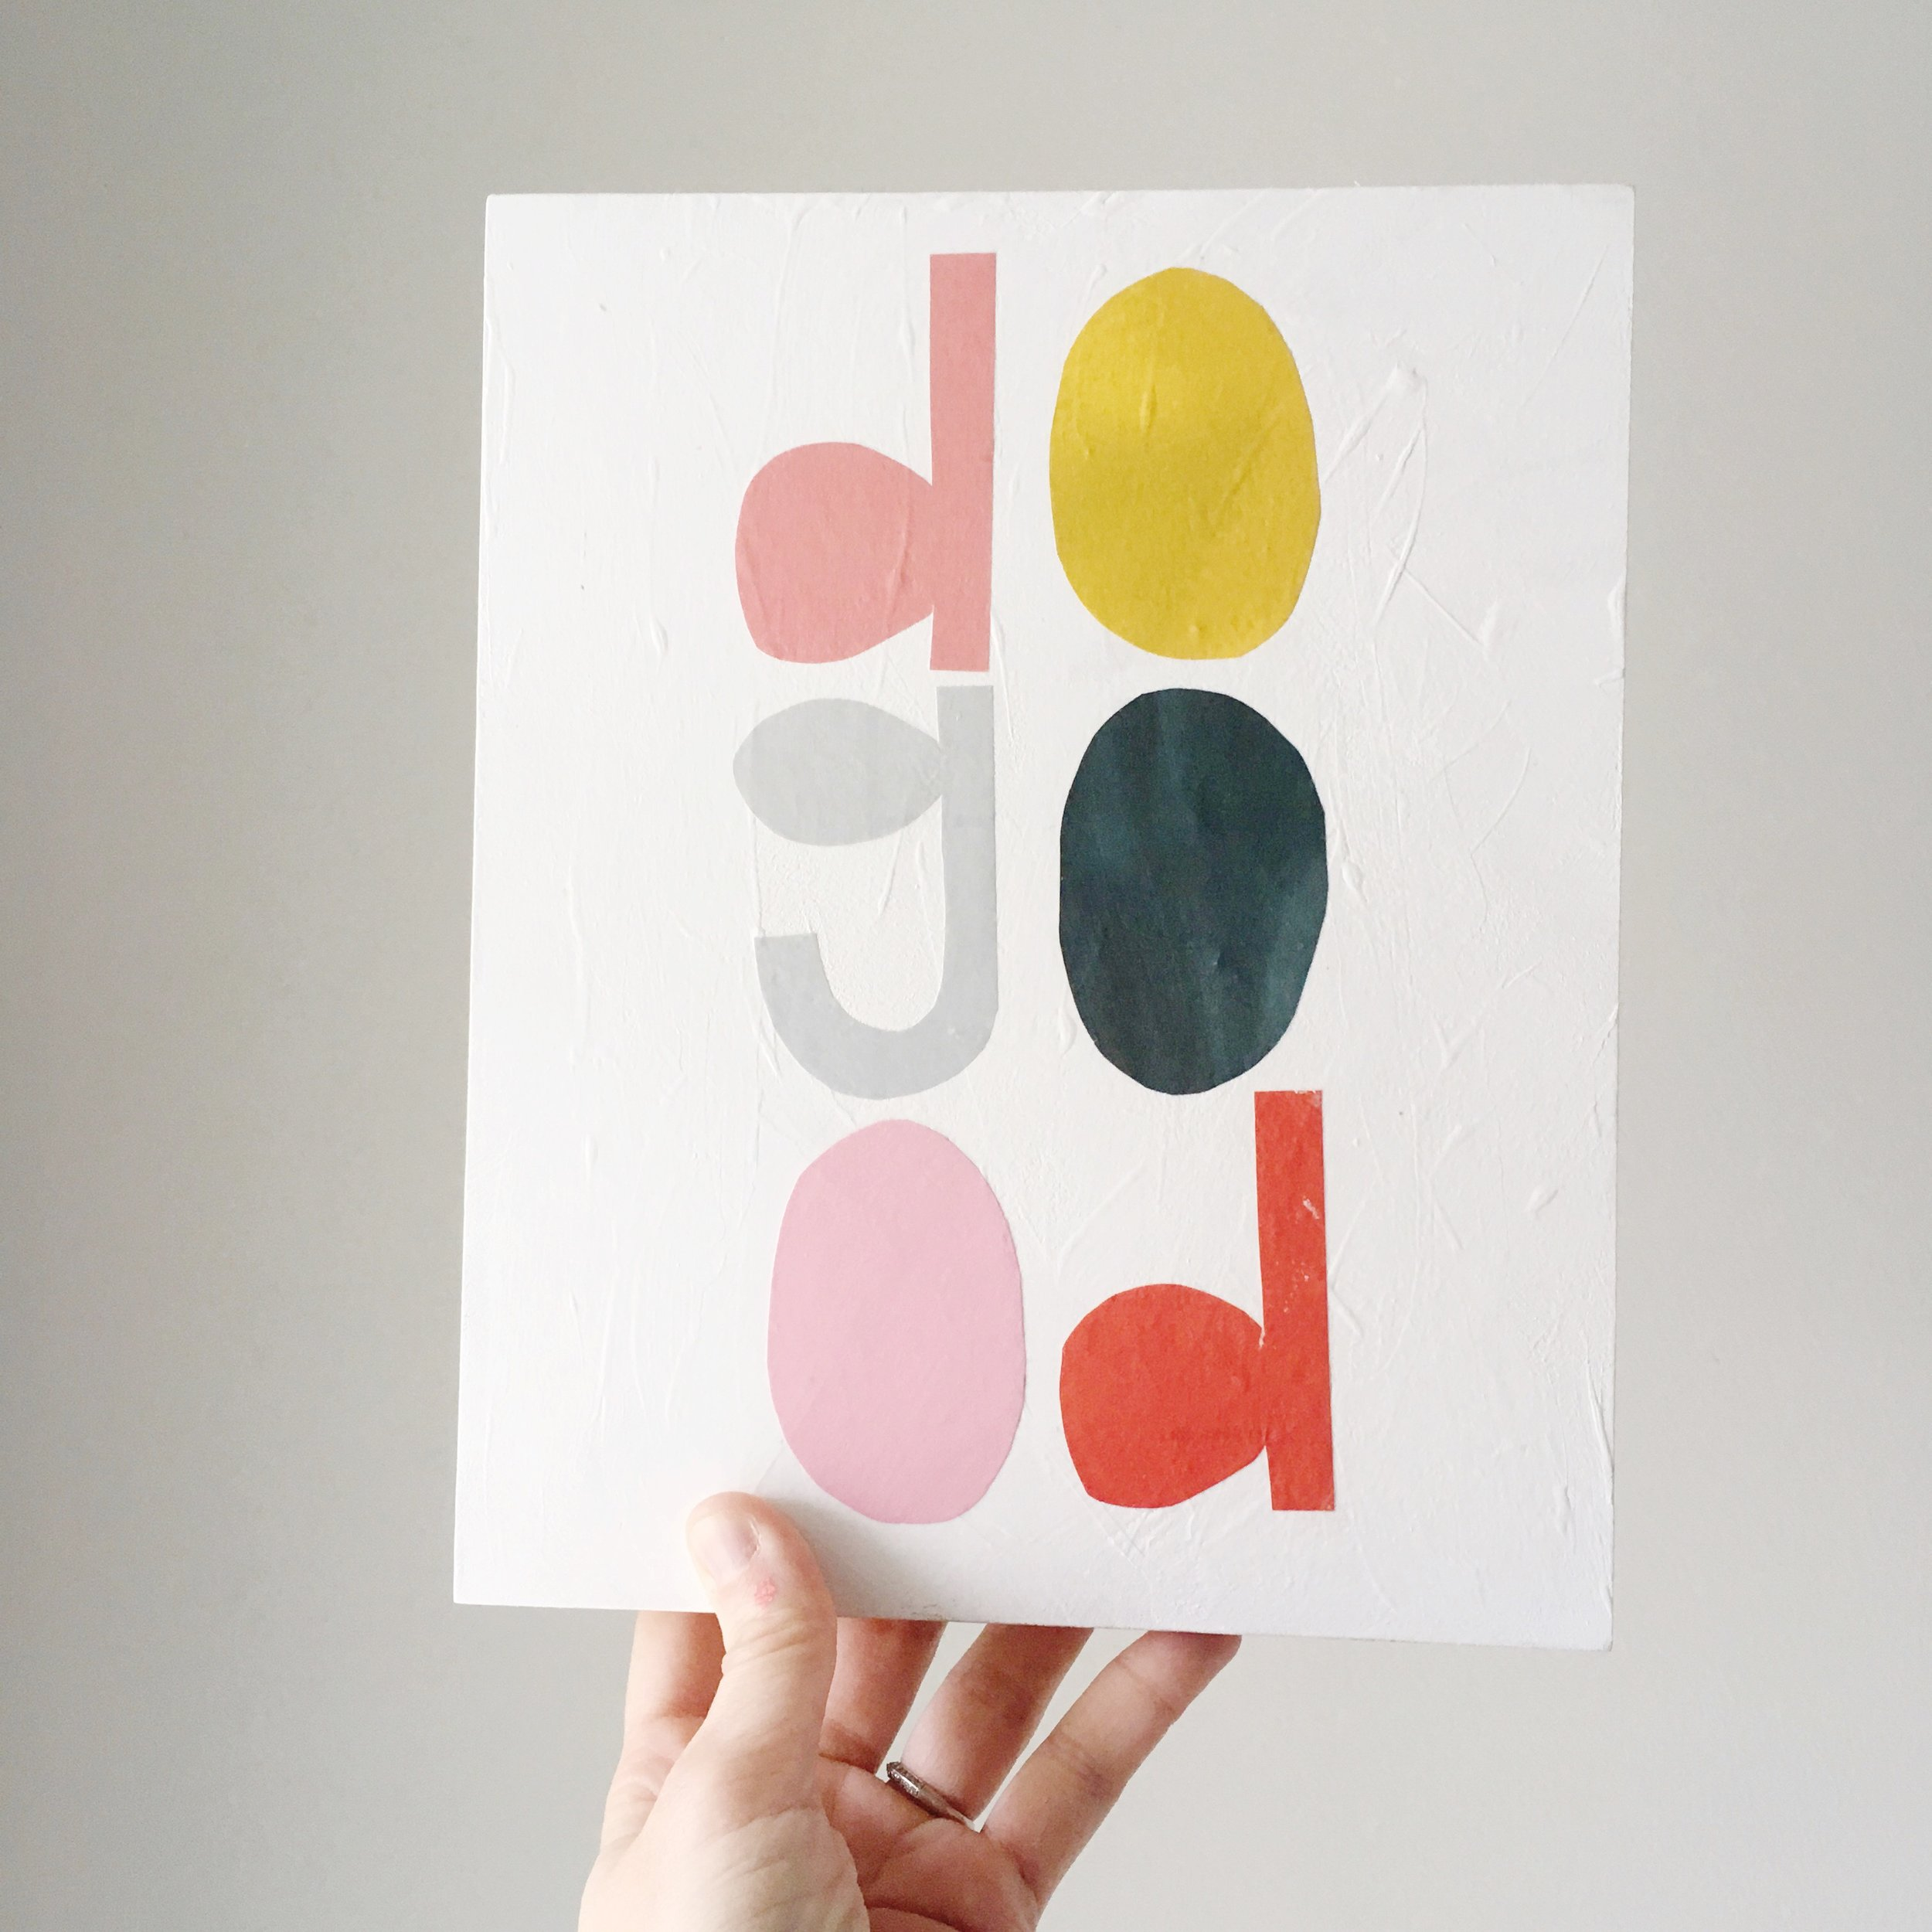 do good mantra painting colorful minimal modern by brooke petermann.JPG